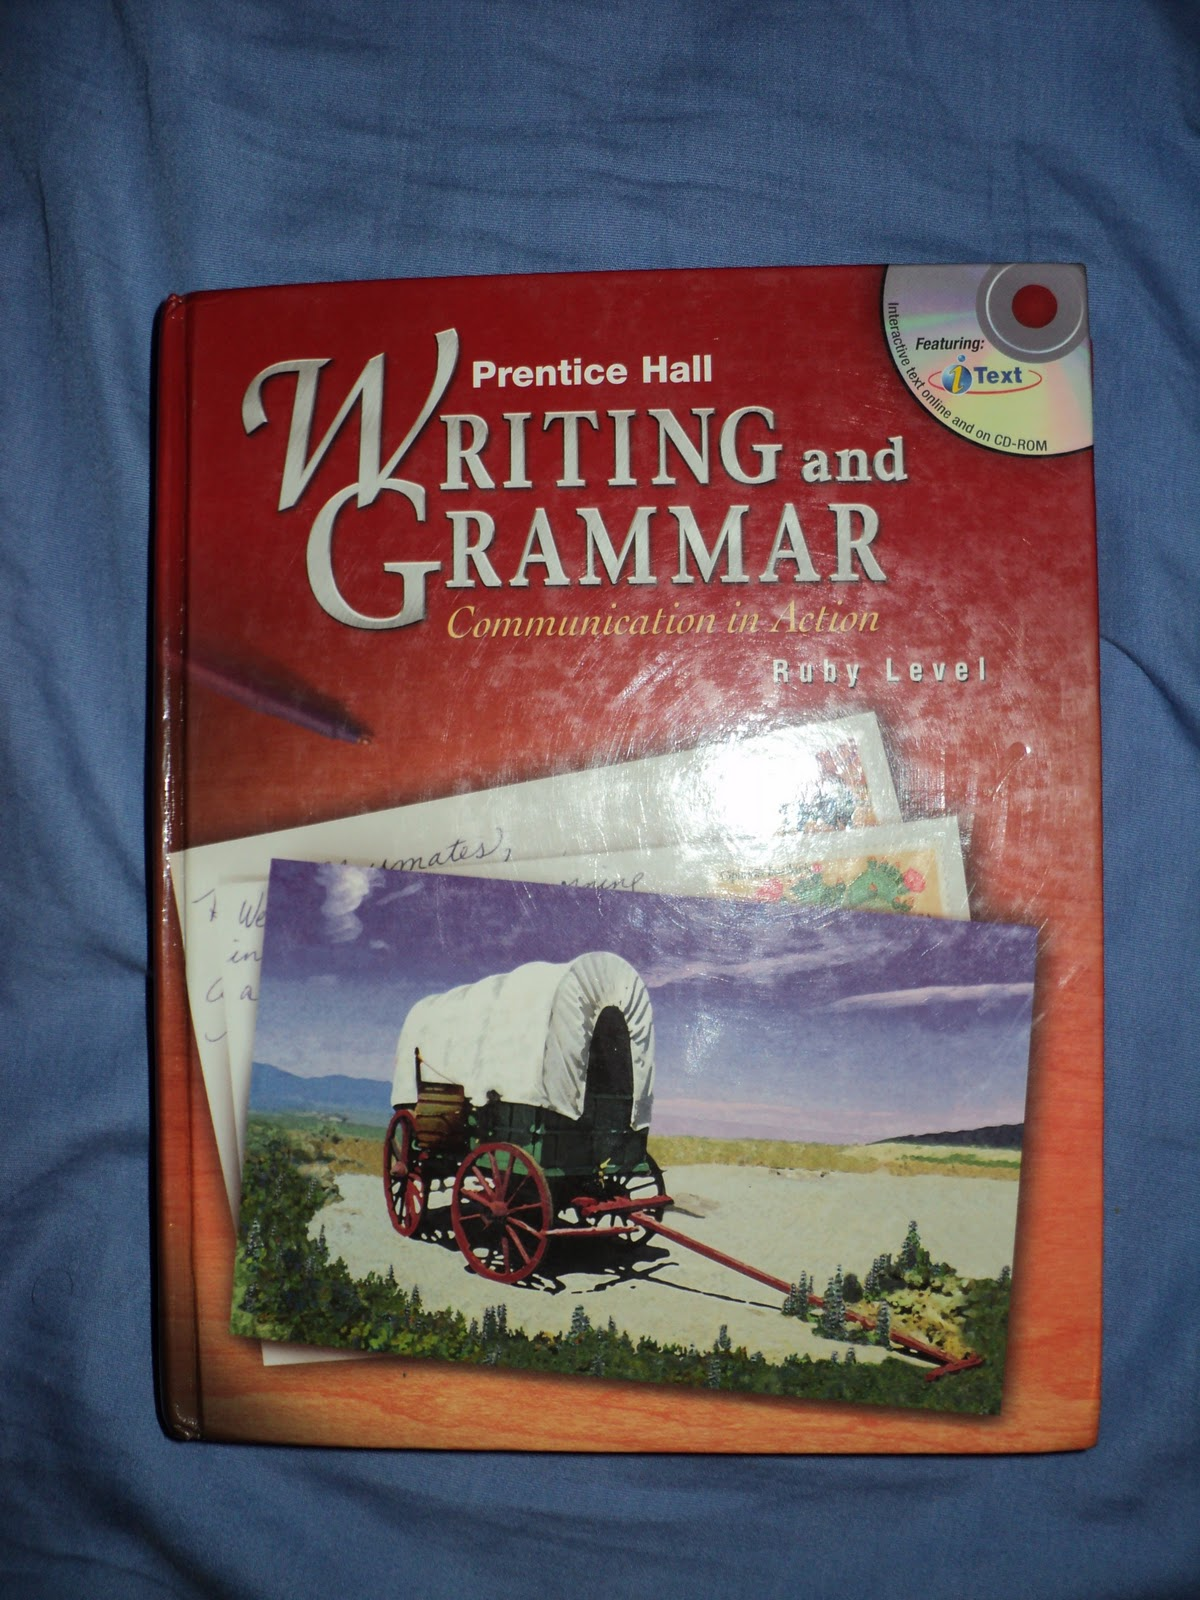 prentice hall writing and grammar Prentice hall writing and grammar: grammar exercise workbook, grade 9, 2007, 216 pages, 0133617254, 9780133617252, pearson prentice hall, 2007.